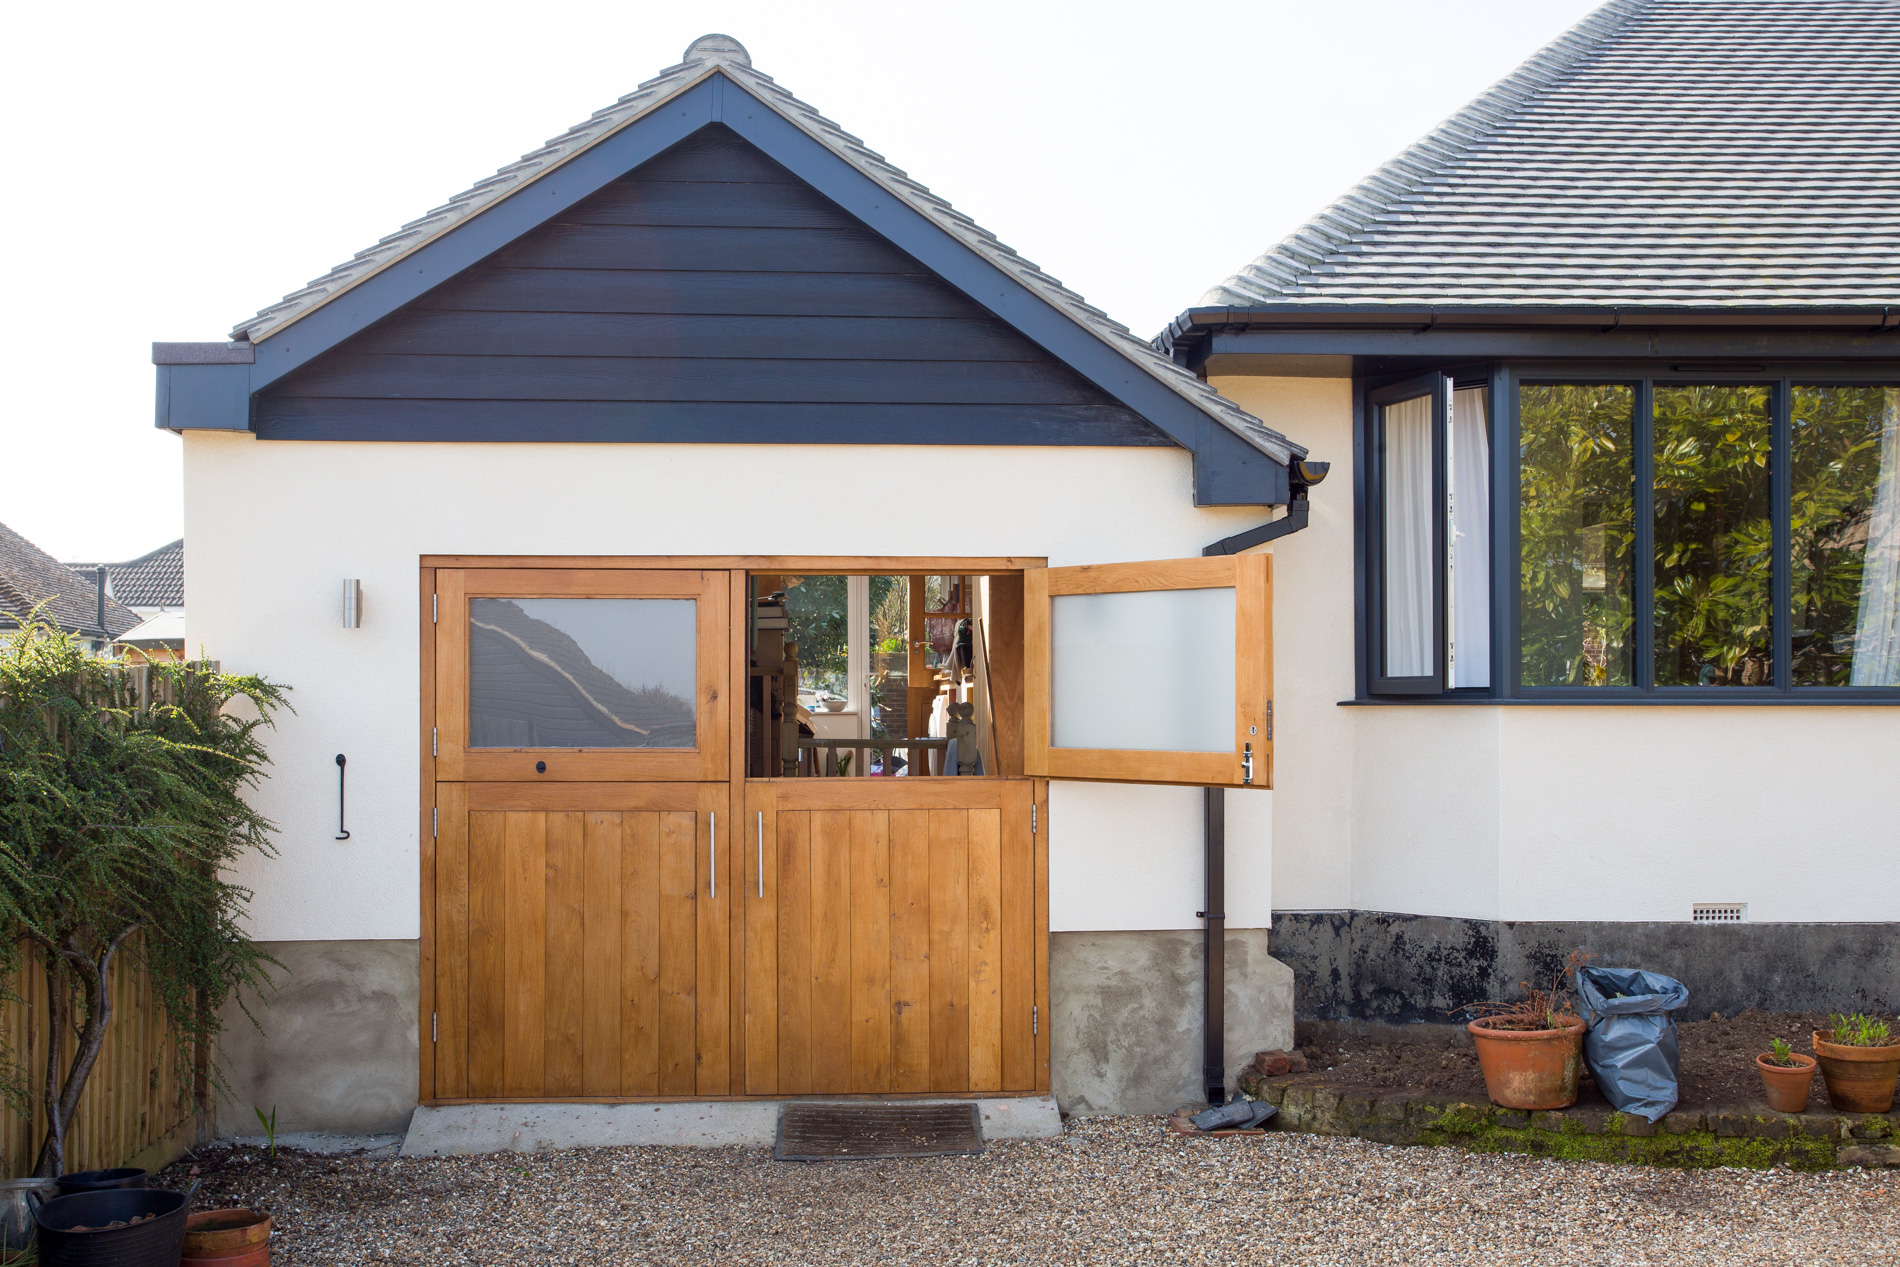 hight resolution of garage conversions the ultimate guide to costing planning and designing your garage conversion real homes